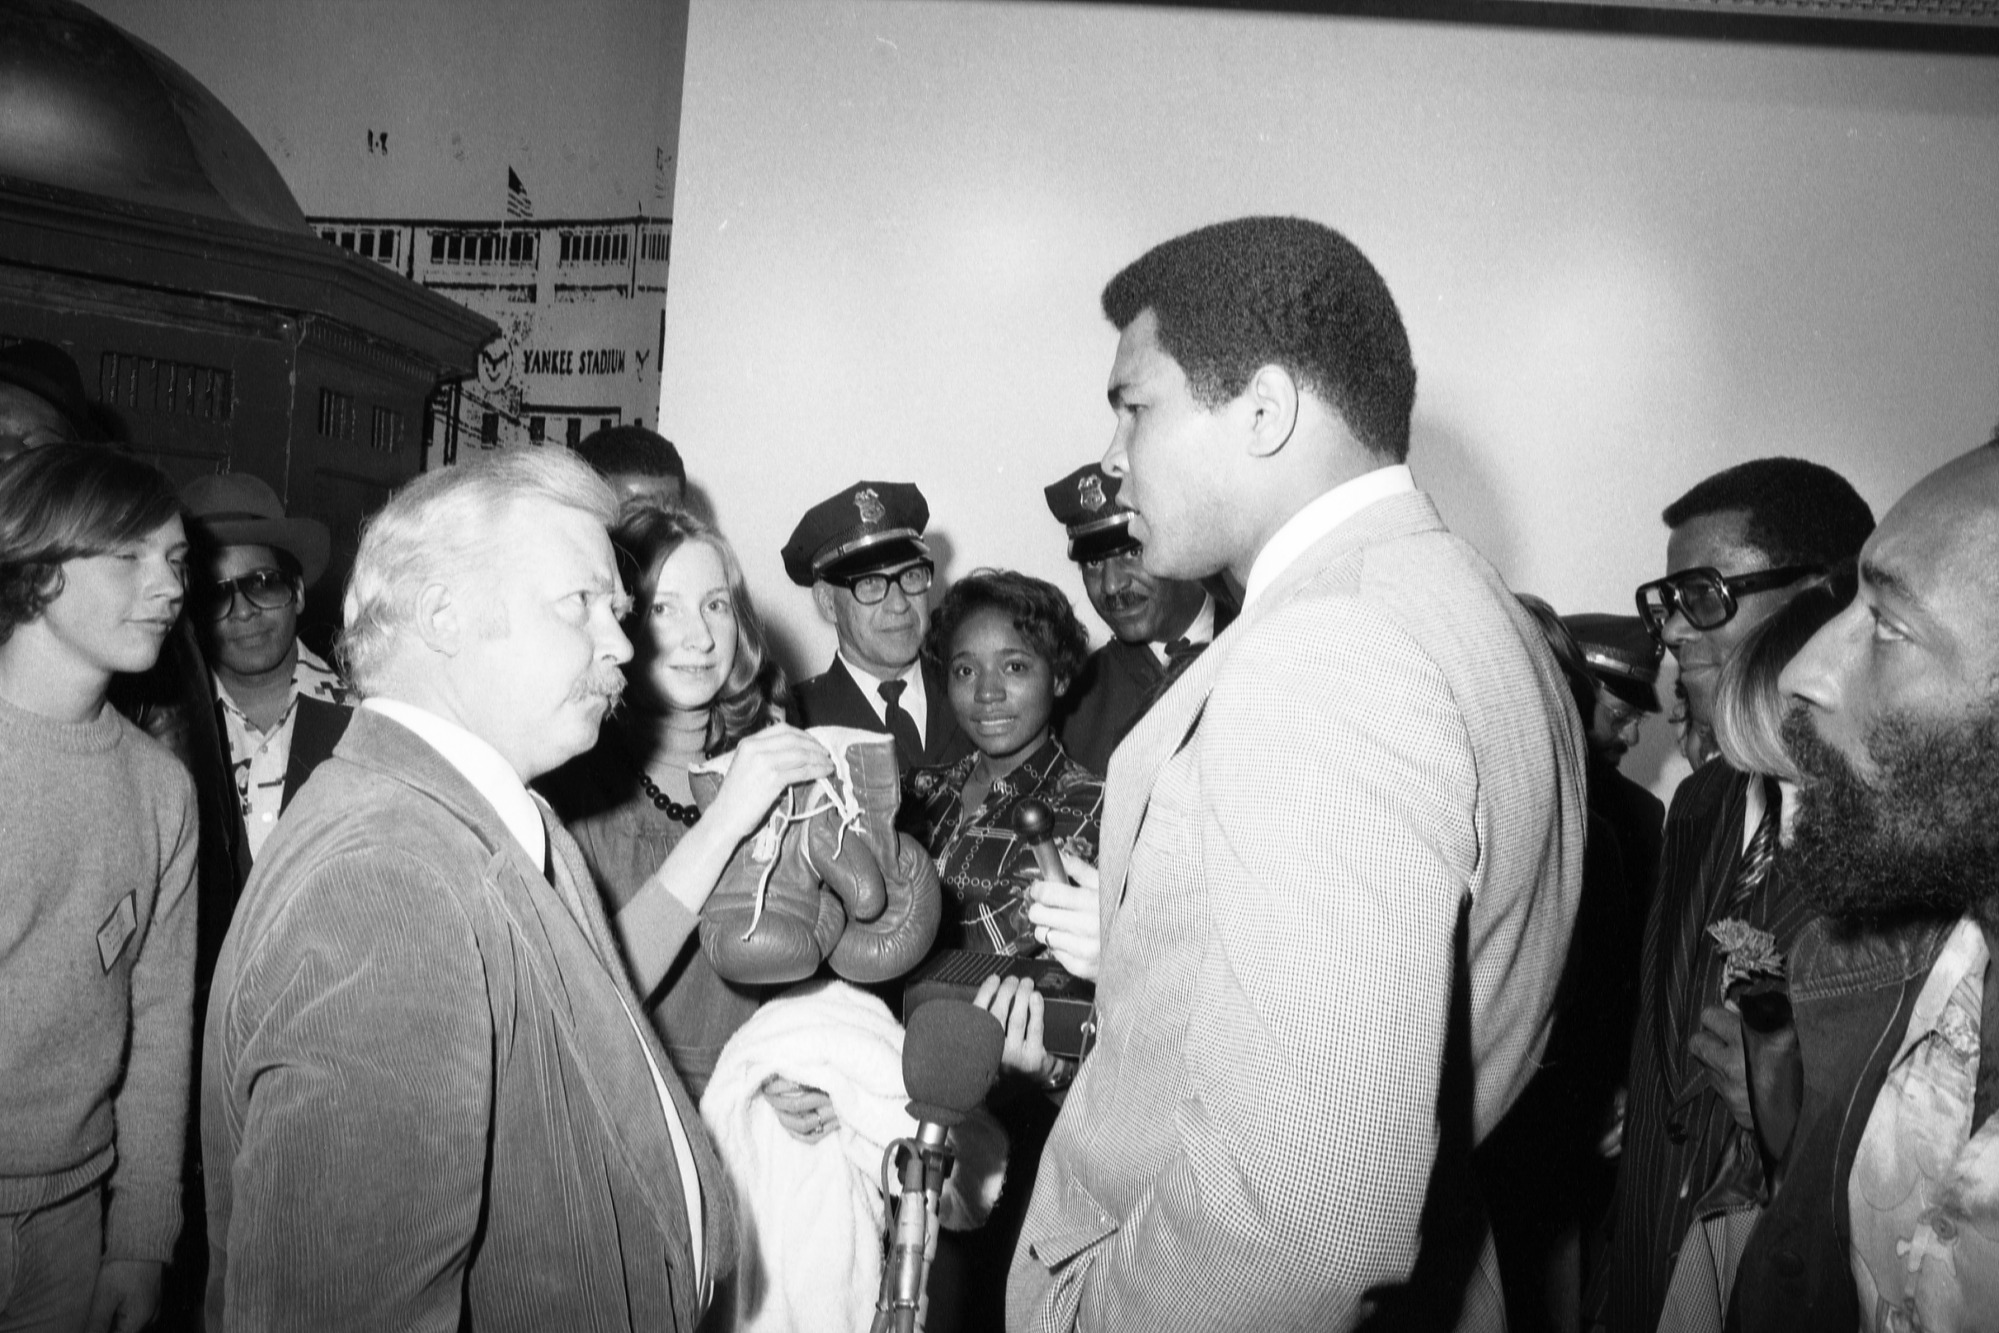 Preview of Muhammad Ali and Carl Scheele in the National Museum of History and Technology